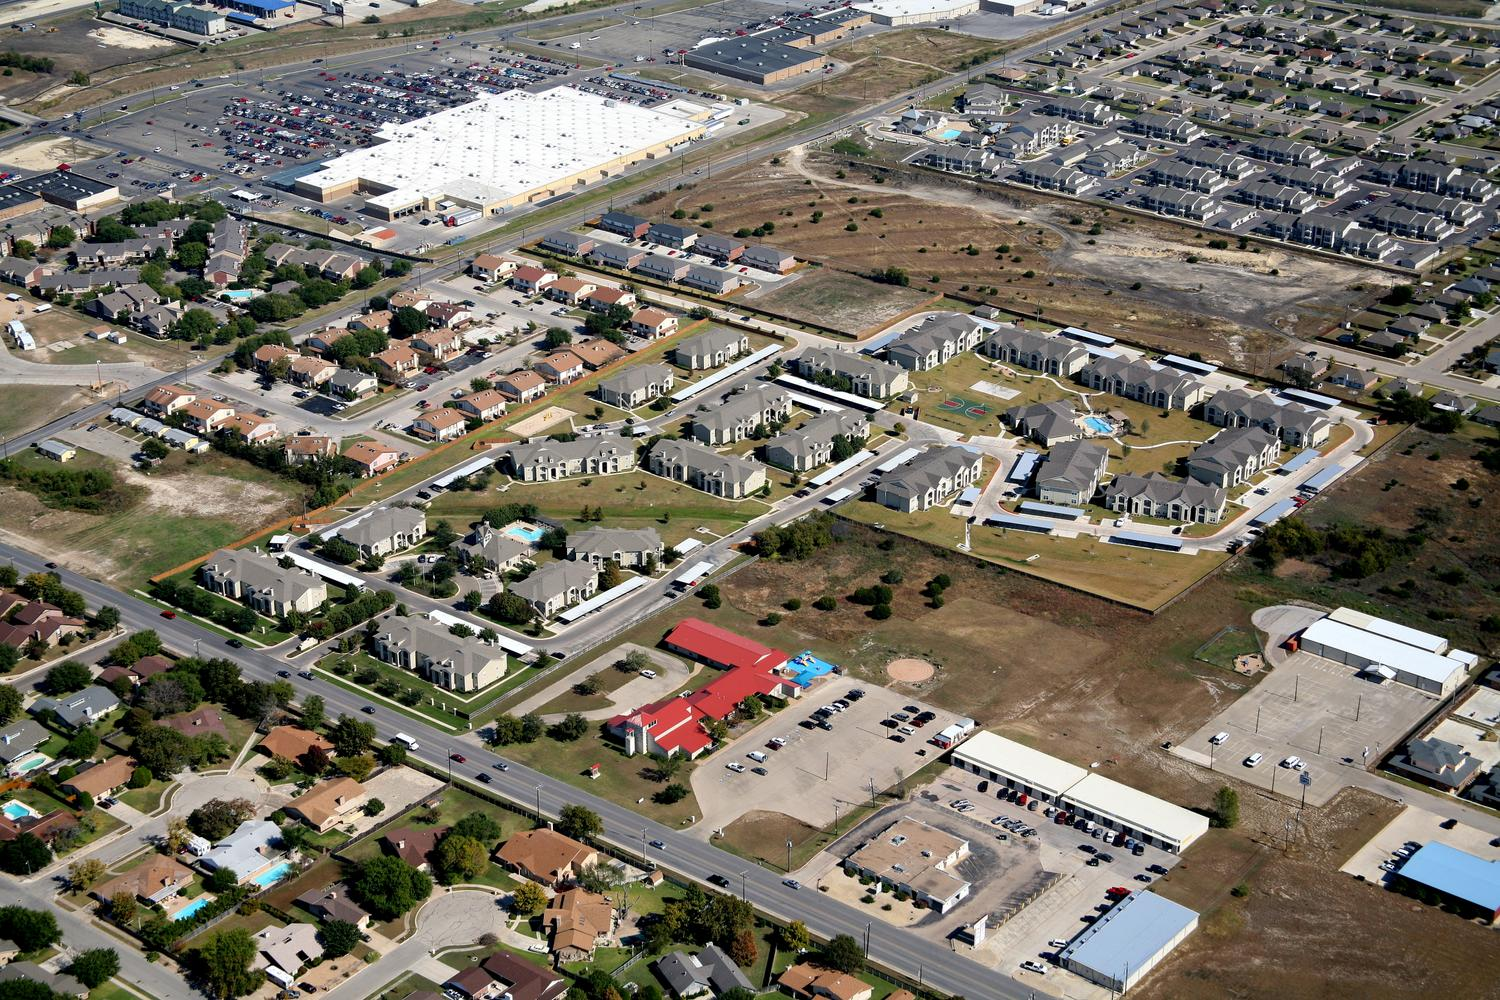 Multifamily Housing, Killeen, Texas - Fort Hood Aerial Photographer - Killeen Aerial Drone Image - Aerial Drone Video - Killeen, TX - Central Texas